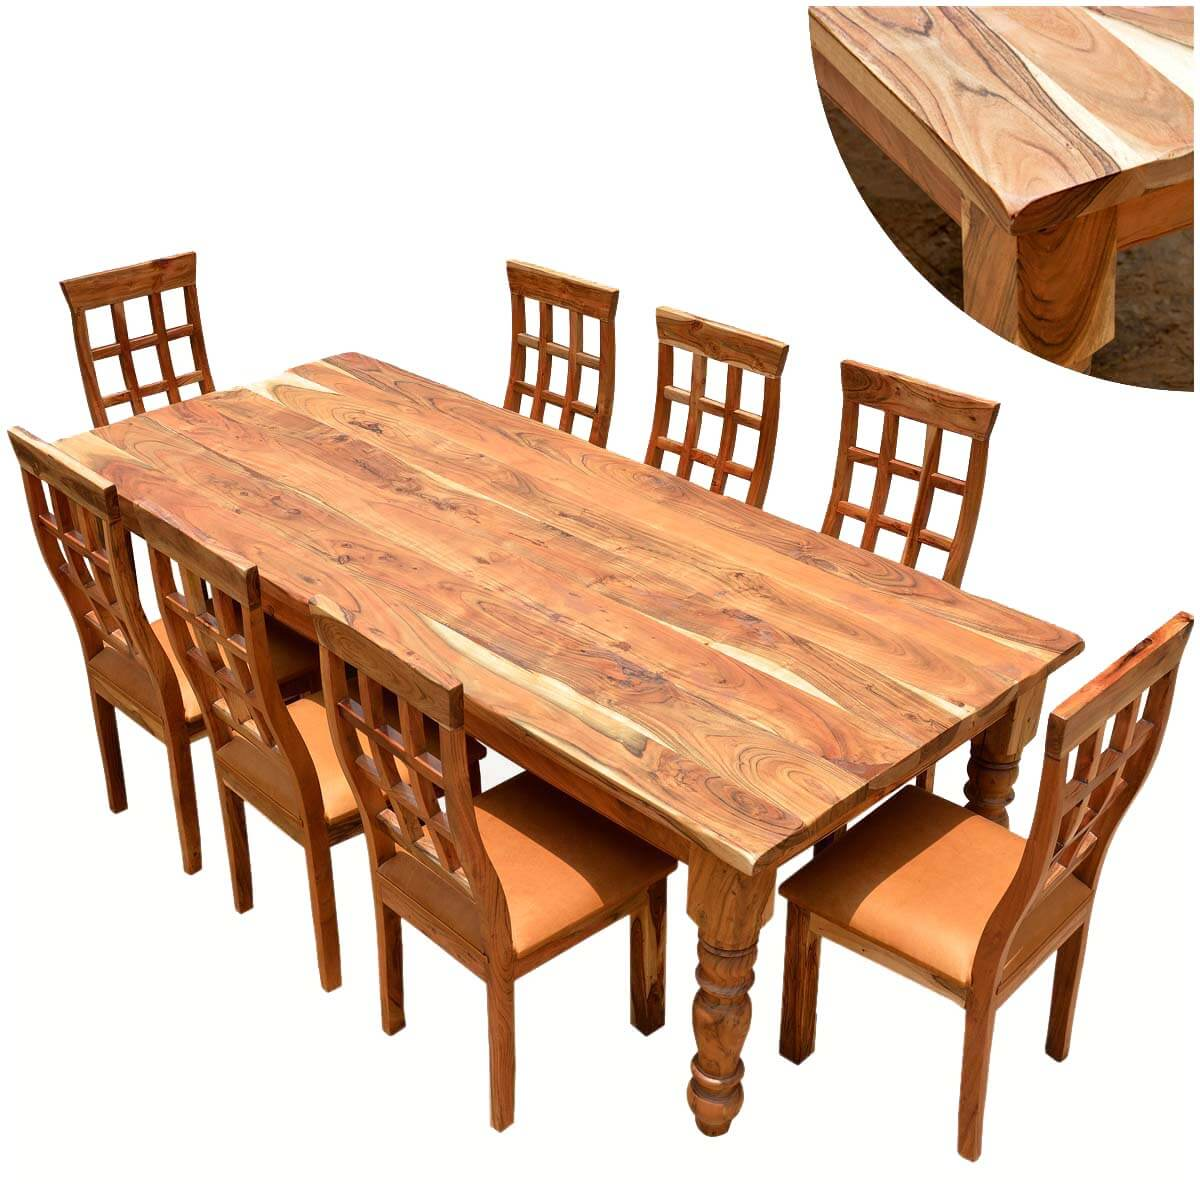 Rustic furniture farmhouse solid wood dining table chair set for Farmhouse dining table